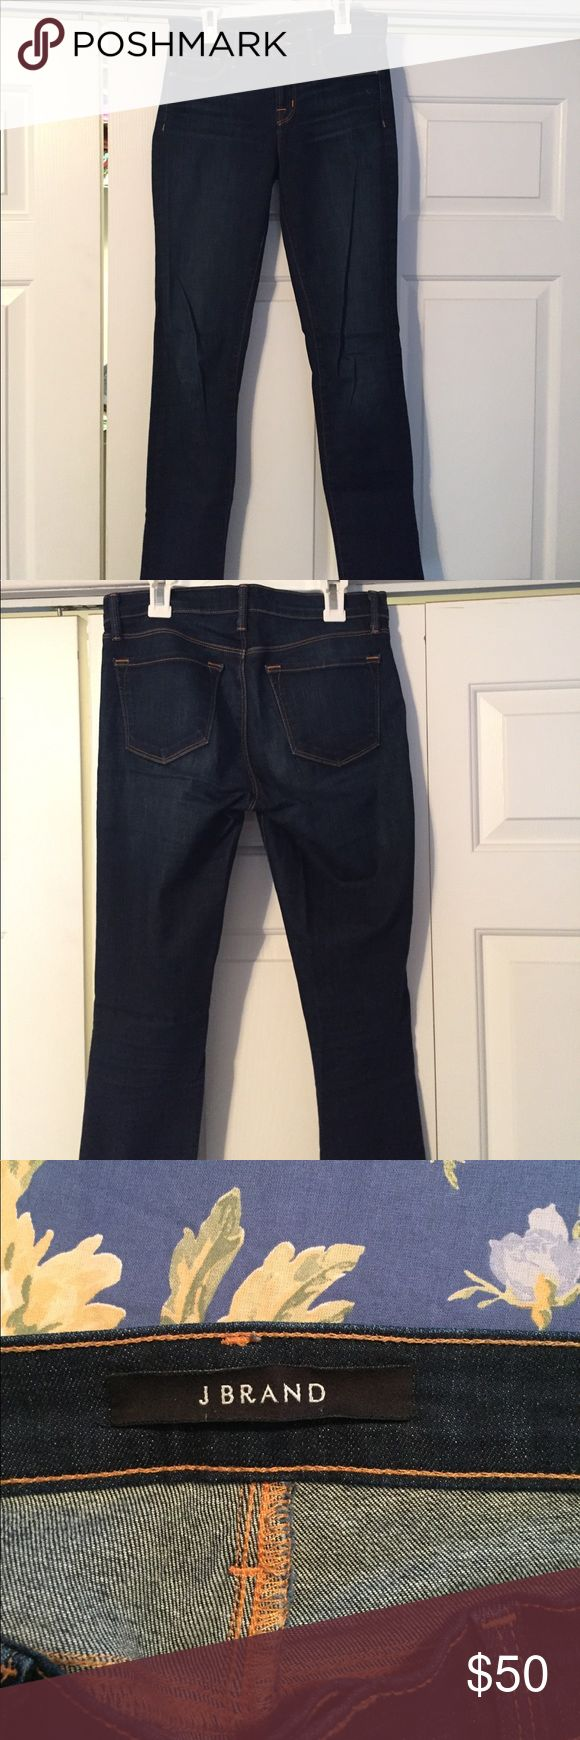 J Brand jeans Dark blue J Brand skinny jeans in size 26! Barely worn before I grew out of them. They are in great shape and fit true to size! J Brand Jeans Skinny